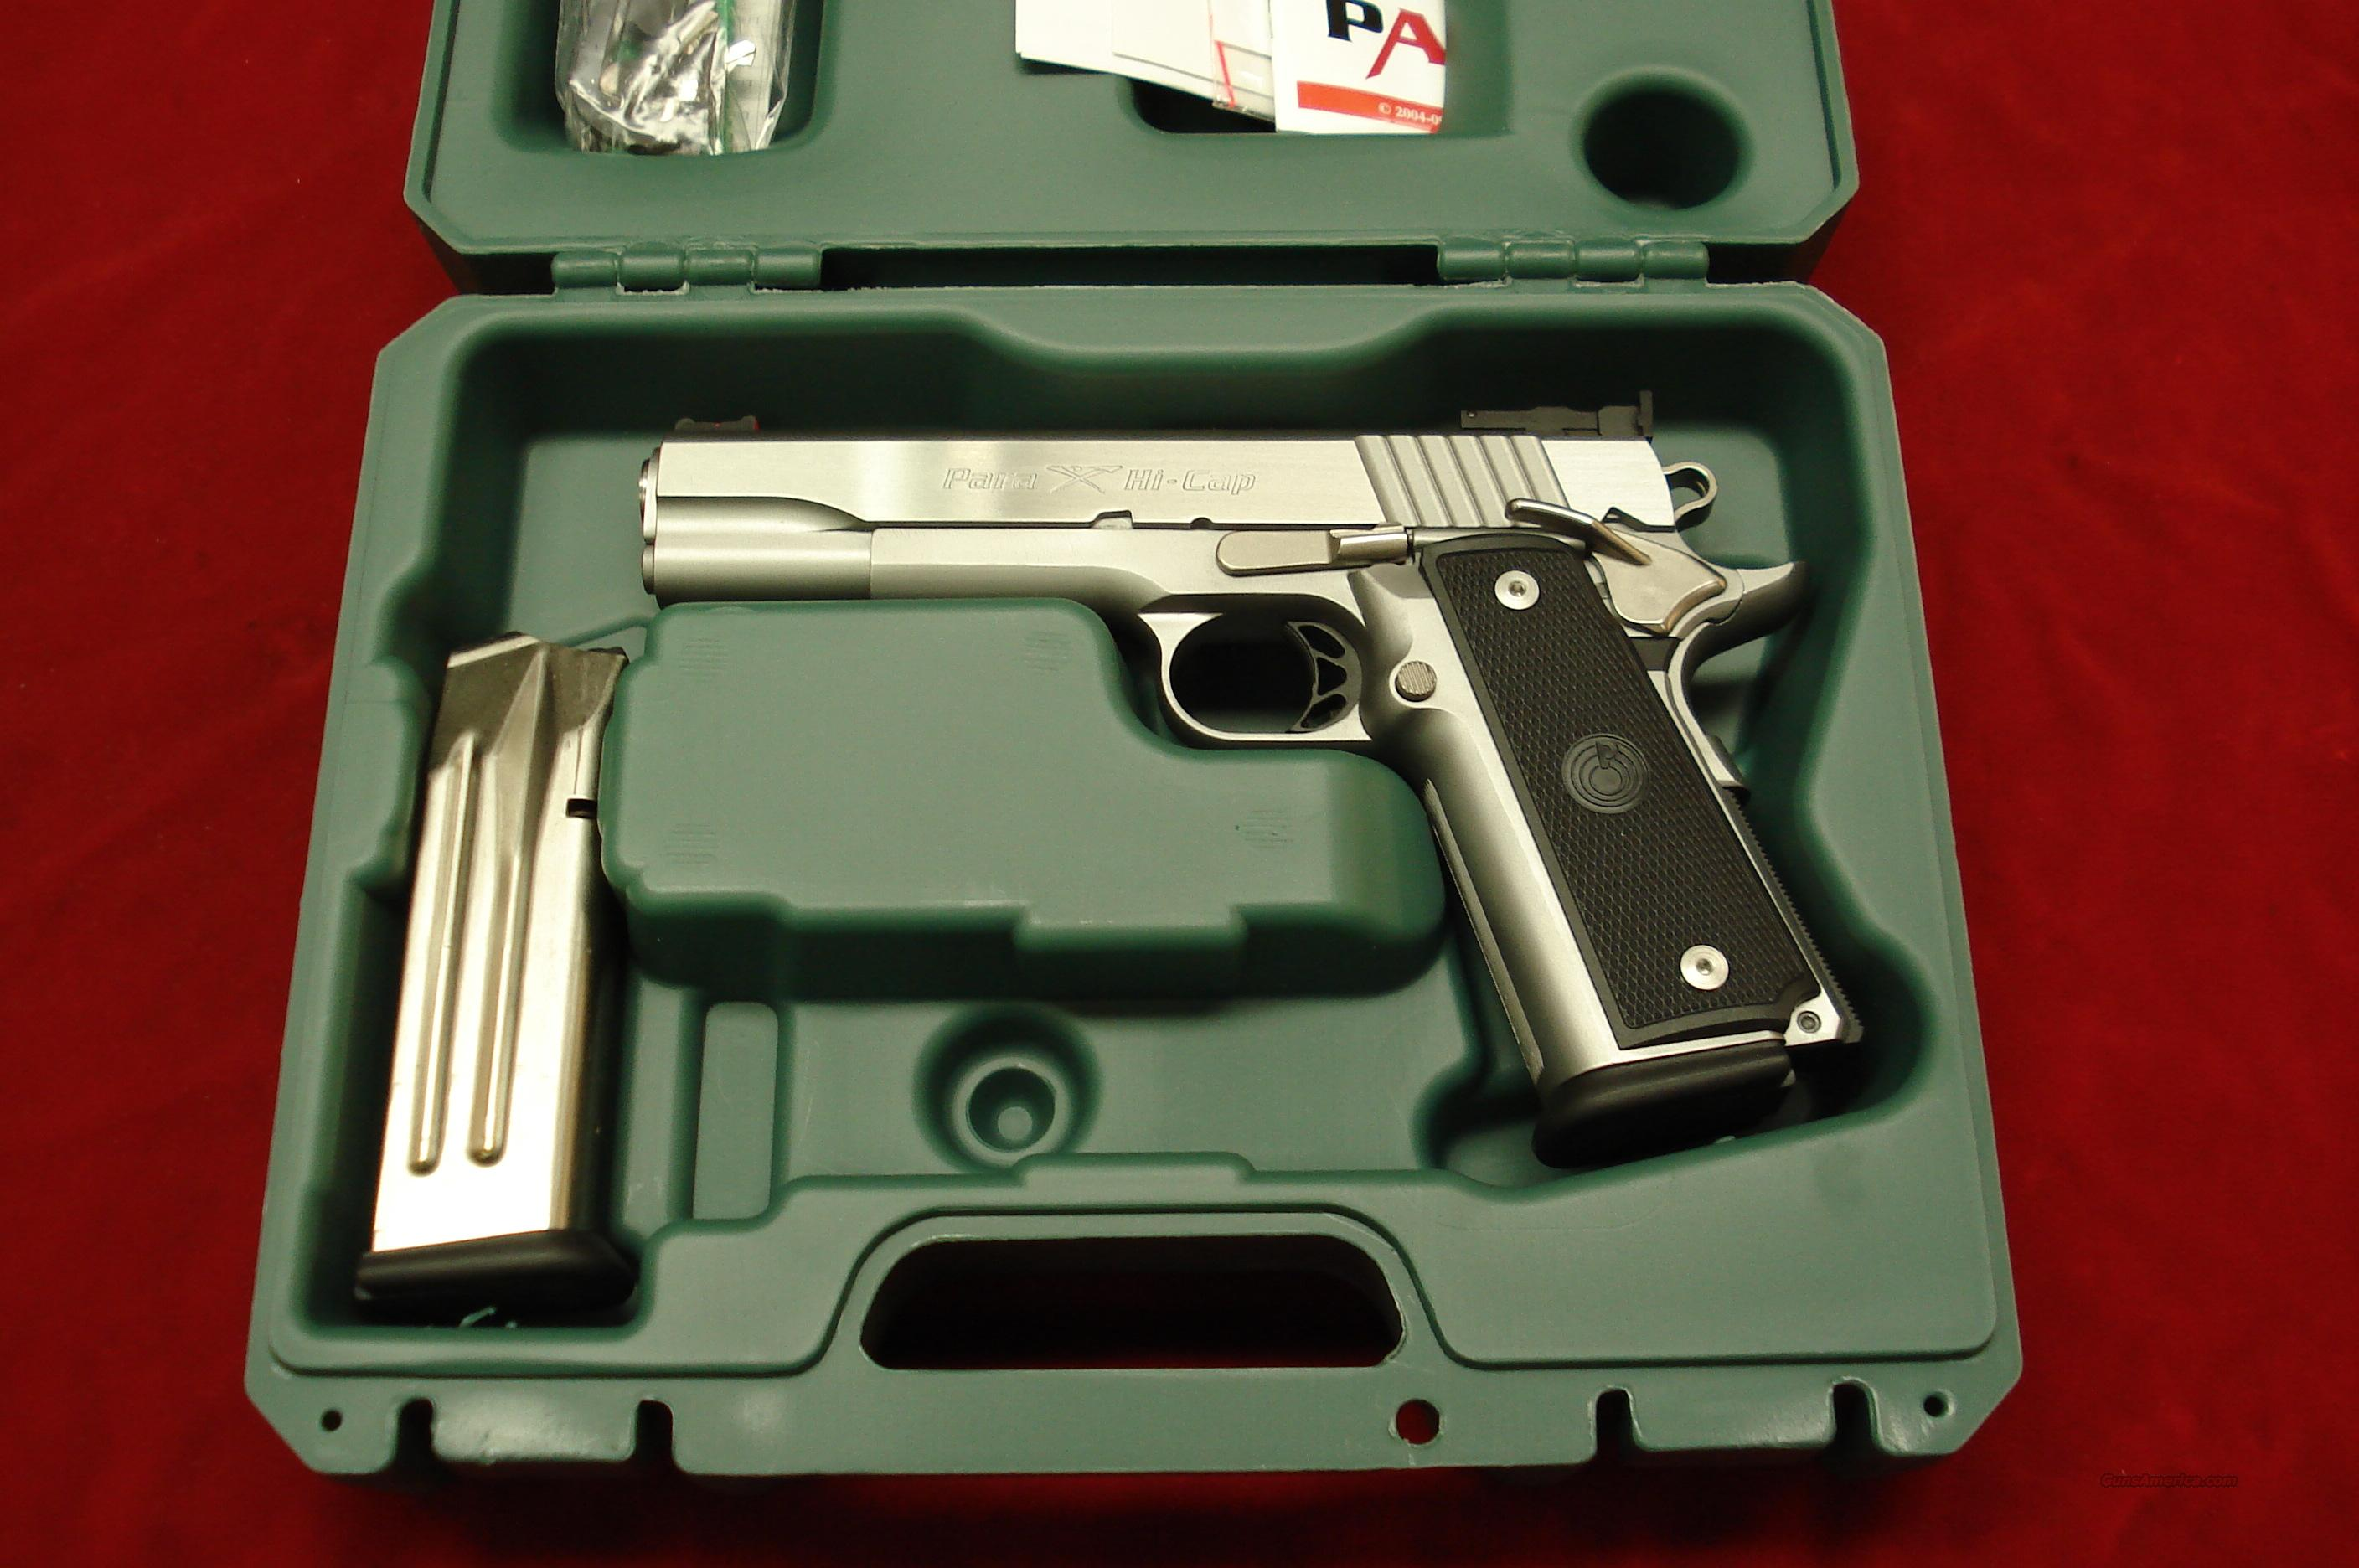 PARA ORDNANCE STAINLESS P18-9 HIGH CAPACITY 1911 9MM NEW  Guns > Pistols > Para Ordnance Pistols